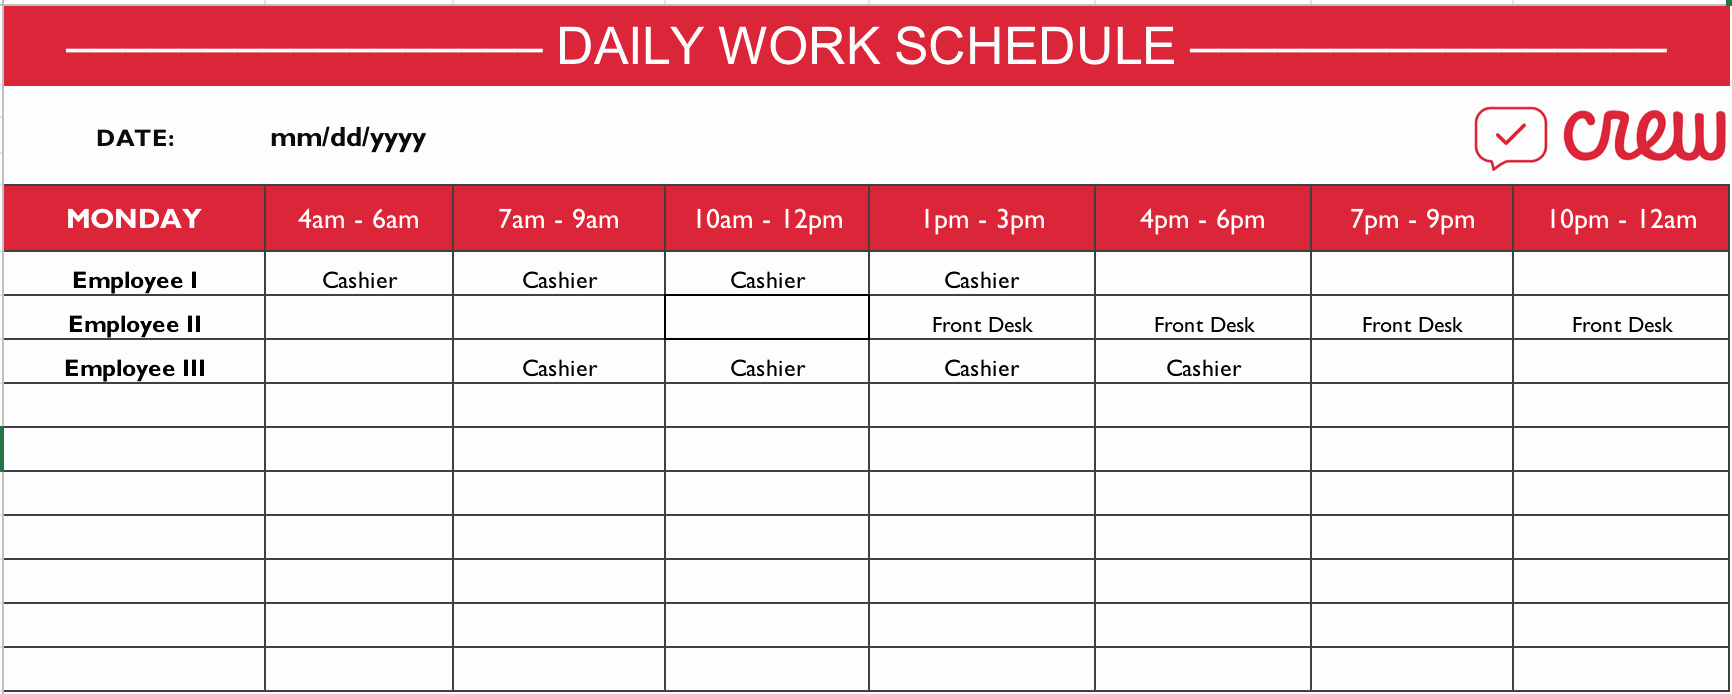 Sample Work Schedule for Employees Fresh Free Daily Work Schedule Template Crew